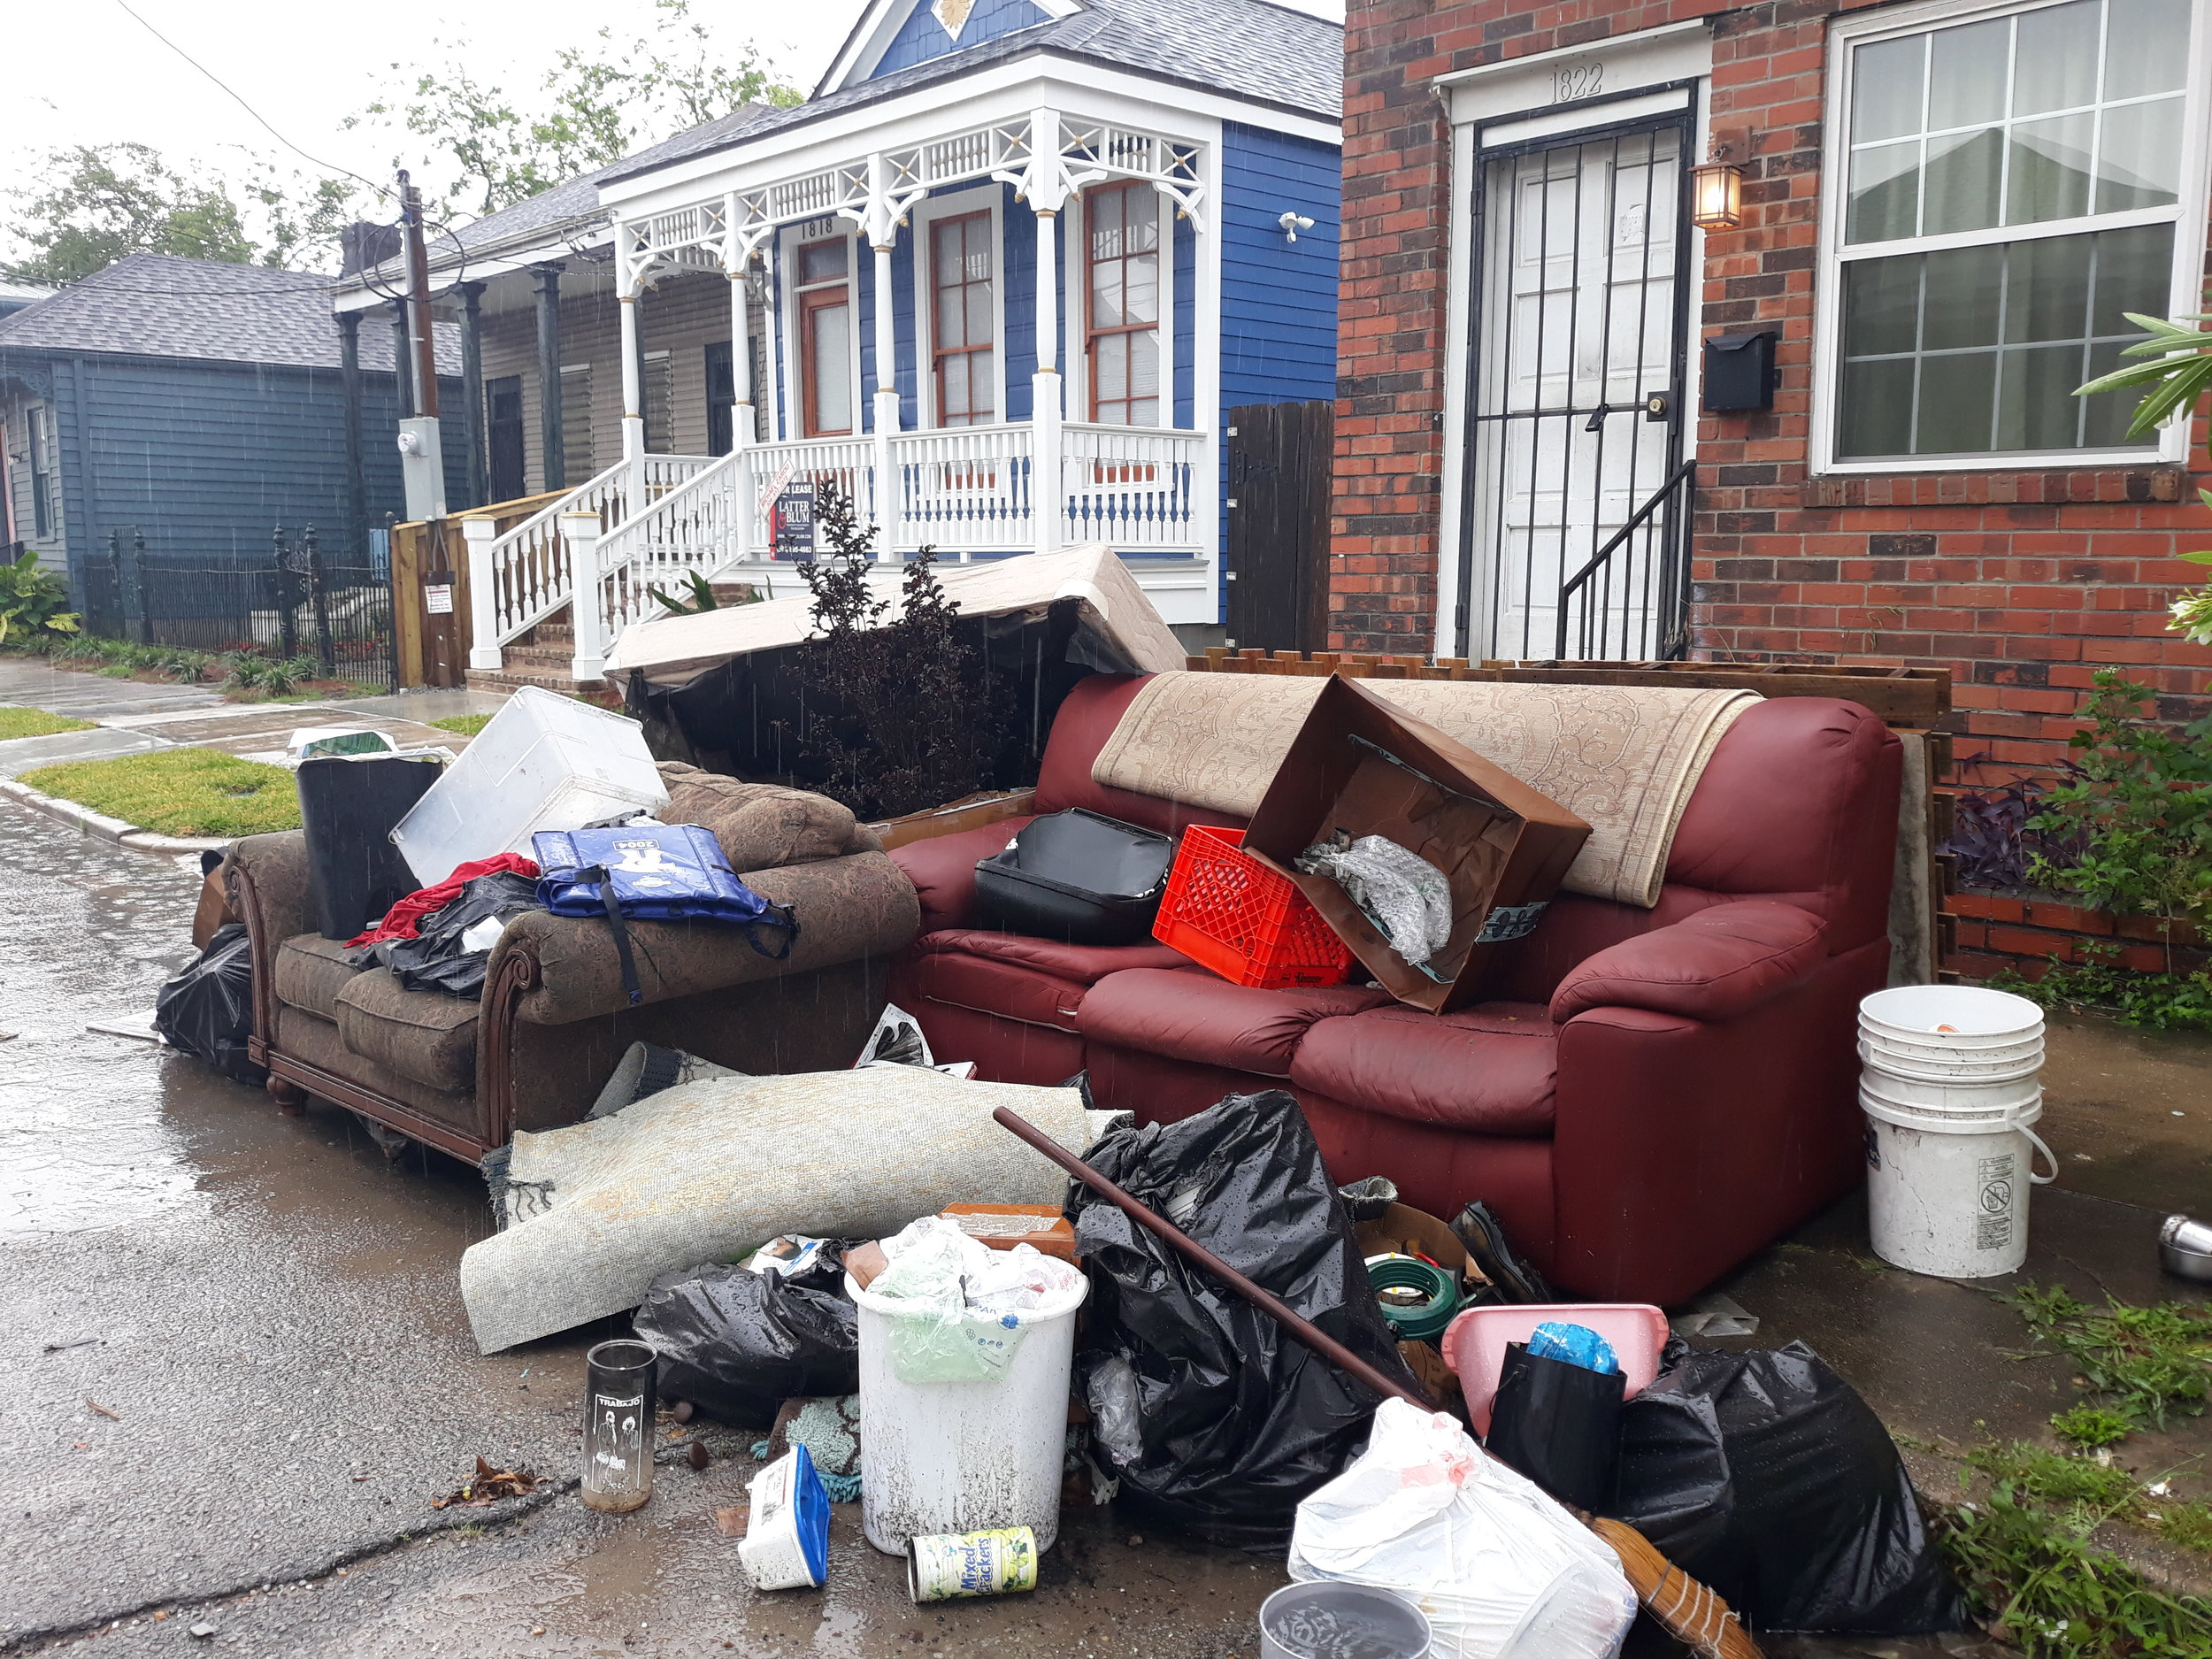 Eviction in the Seventh Ward, New Orleans  Image: Liam Grealy